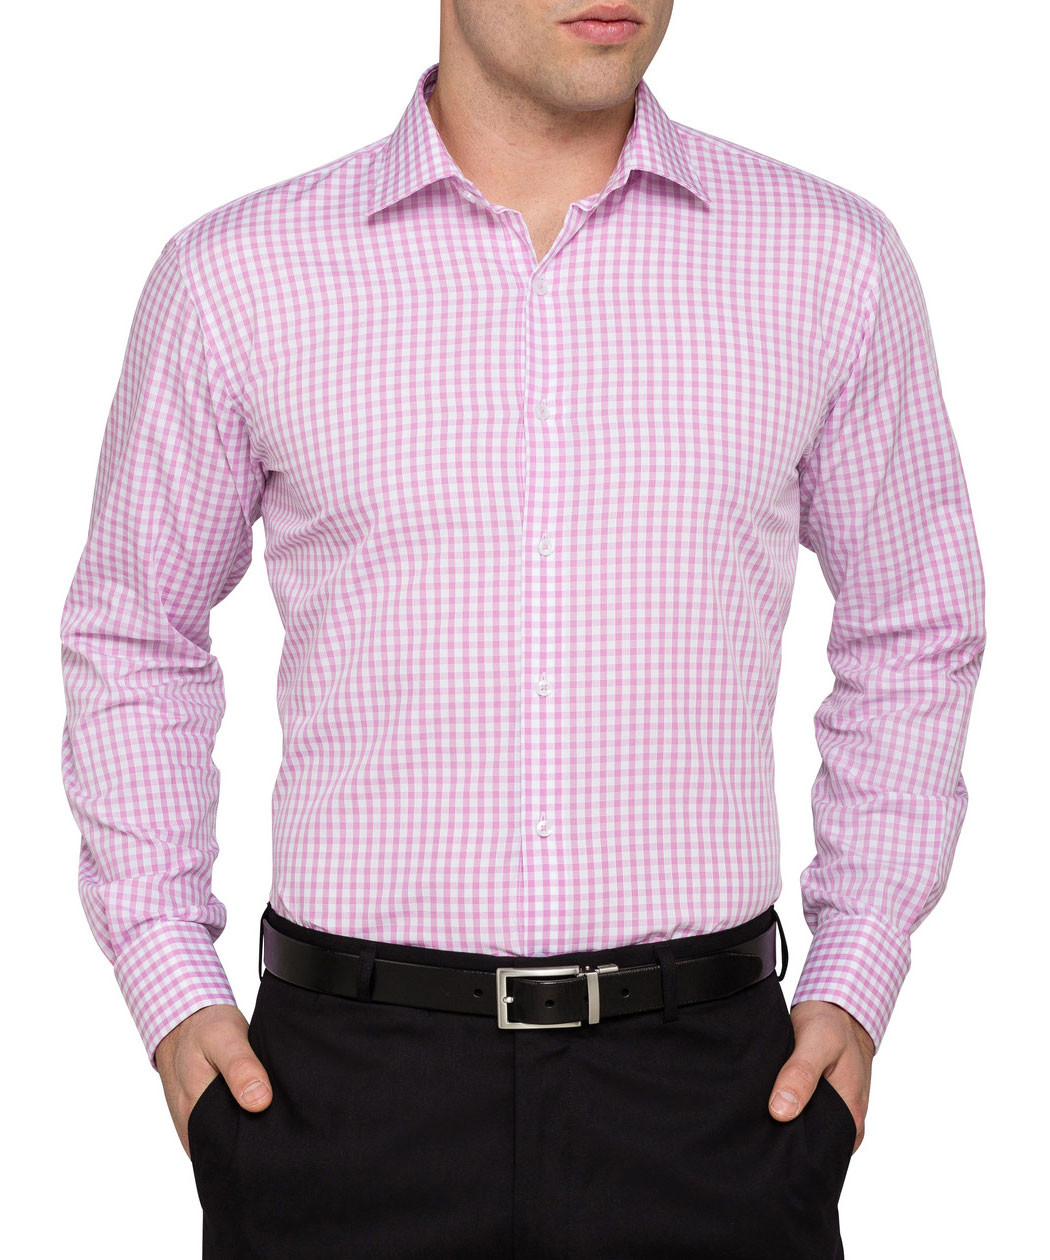 c82db0ff5ee ... Van Heusen Pink Check French Cuff Euro Fit Shirt. Product Image · Image  1 ...